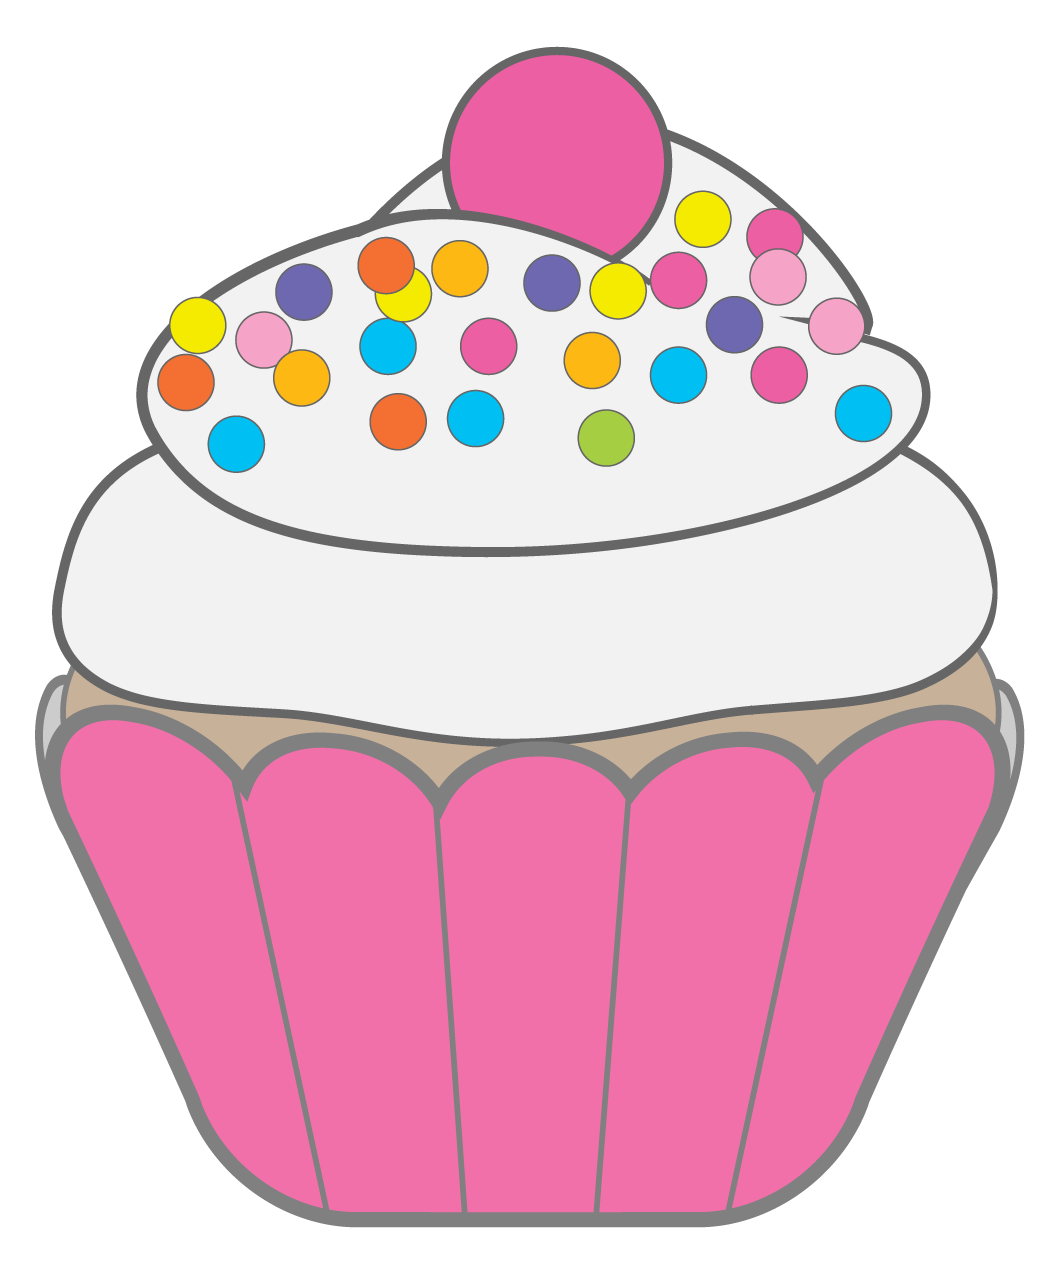 Muffins clipart january. Free cupcake cliparts download